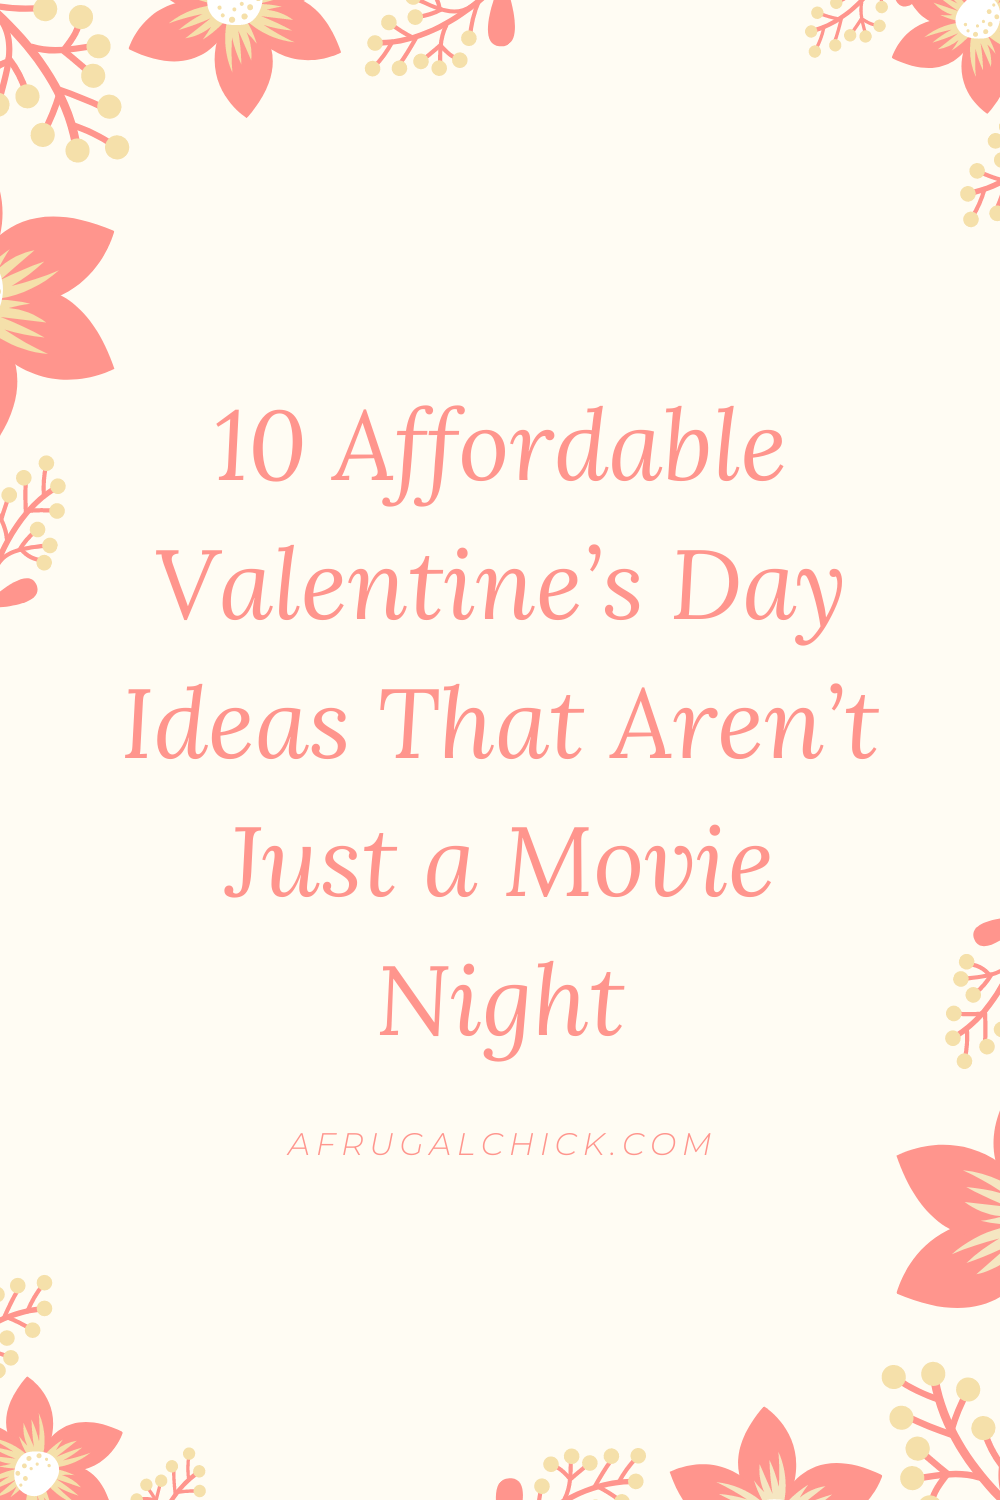 Affordable Valentine's Day Ideas- If you need some ideas for Valentine's Day but you have a budget check these out!